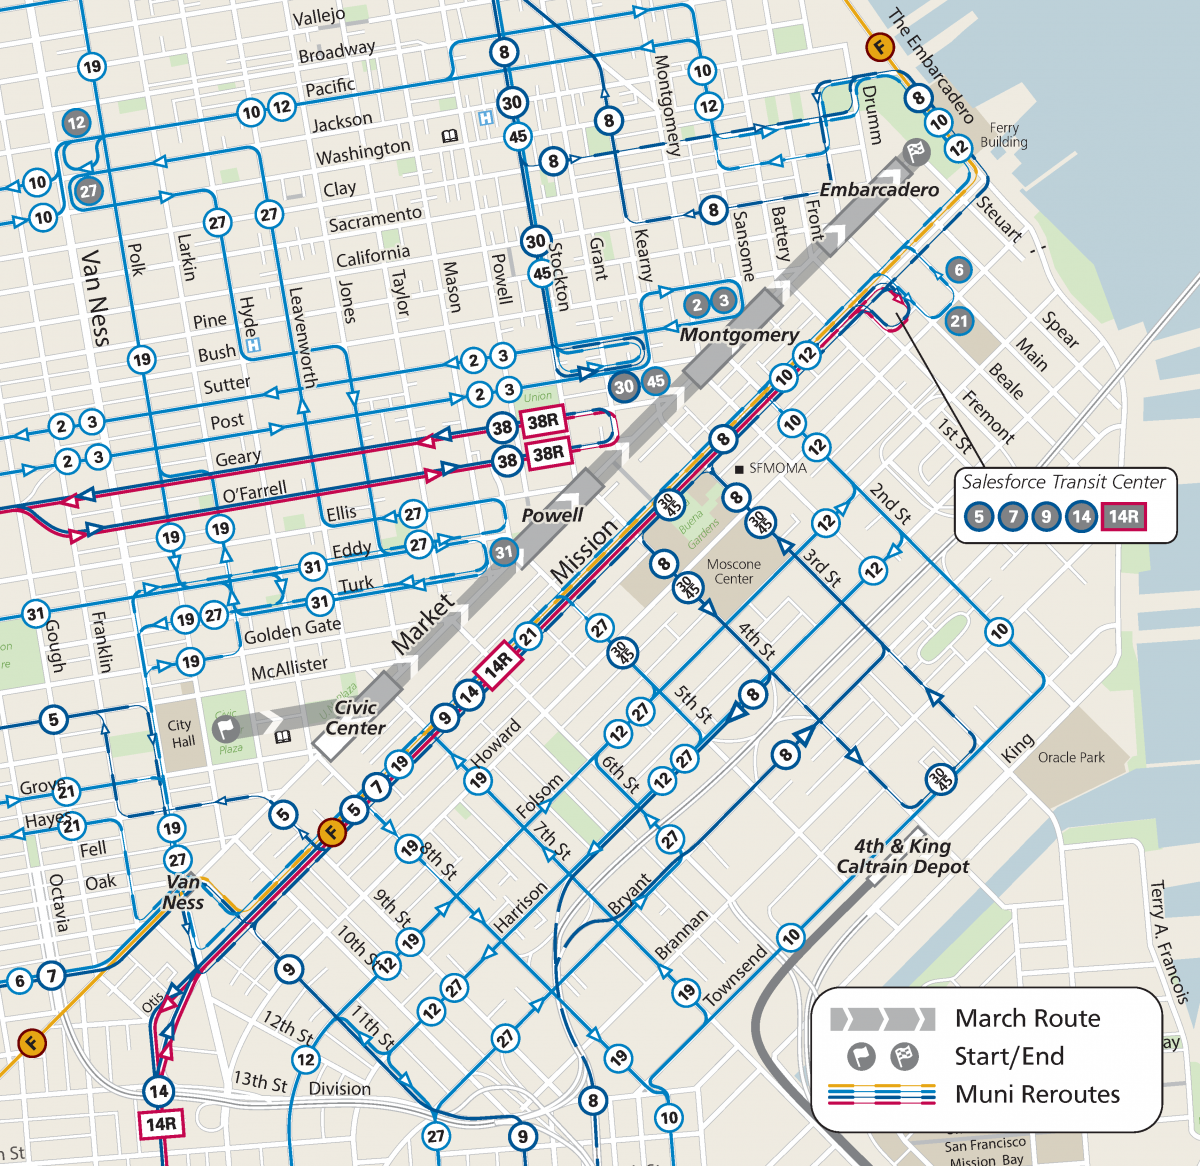 Map of Muni Reroutes for Walk for Life 2020